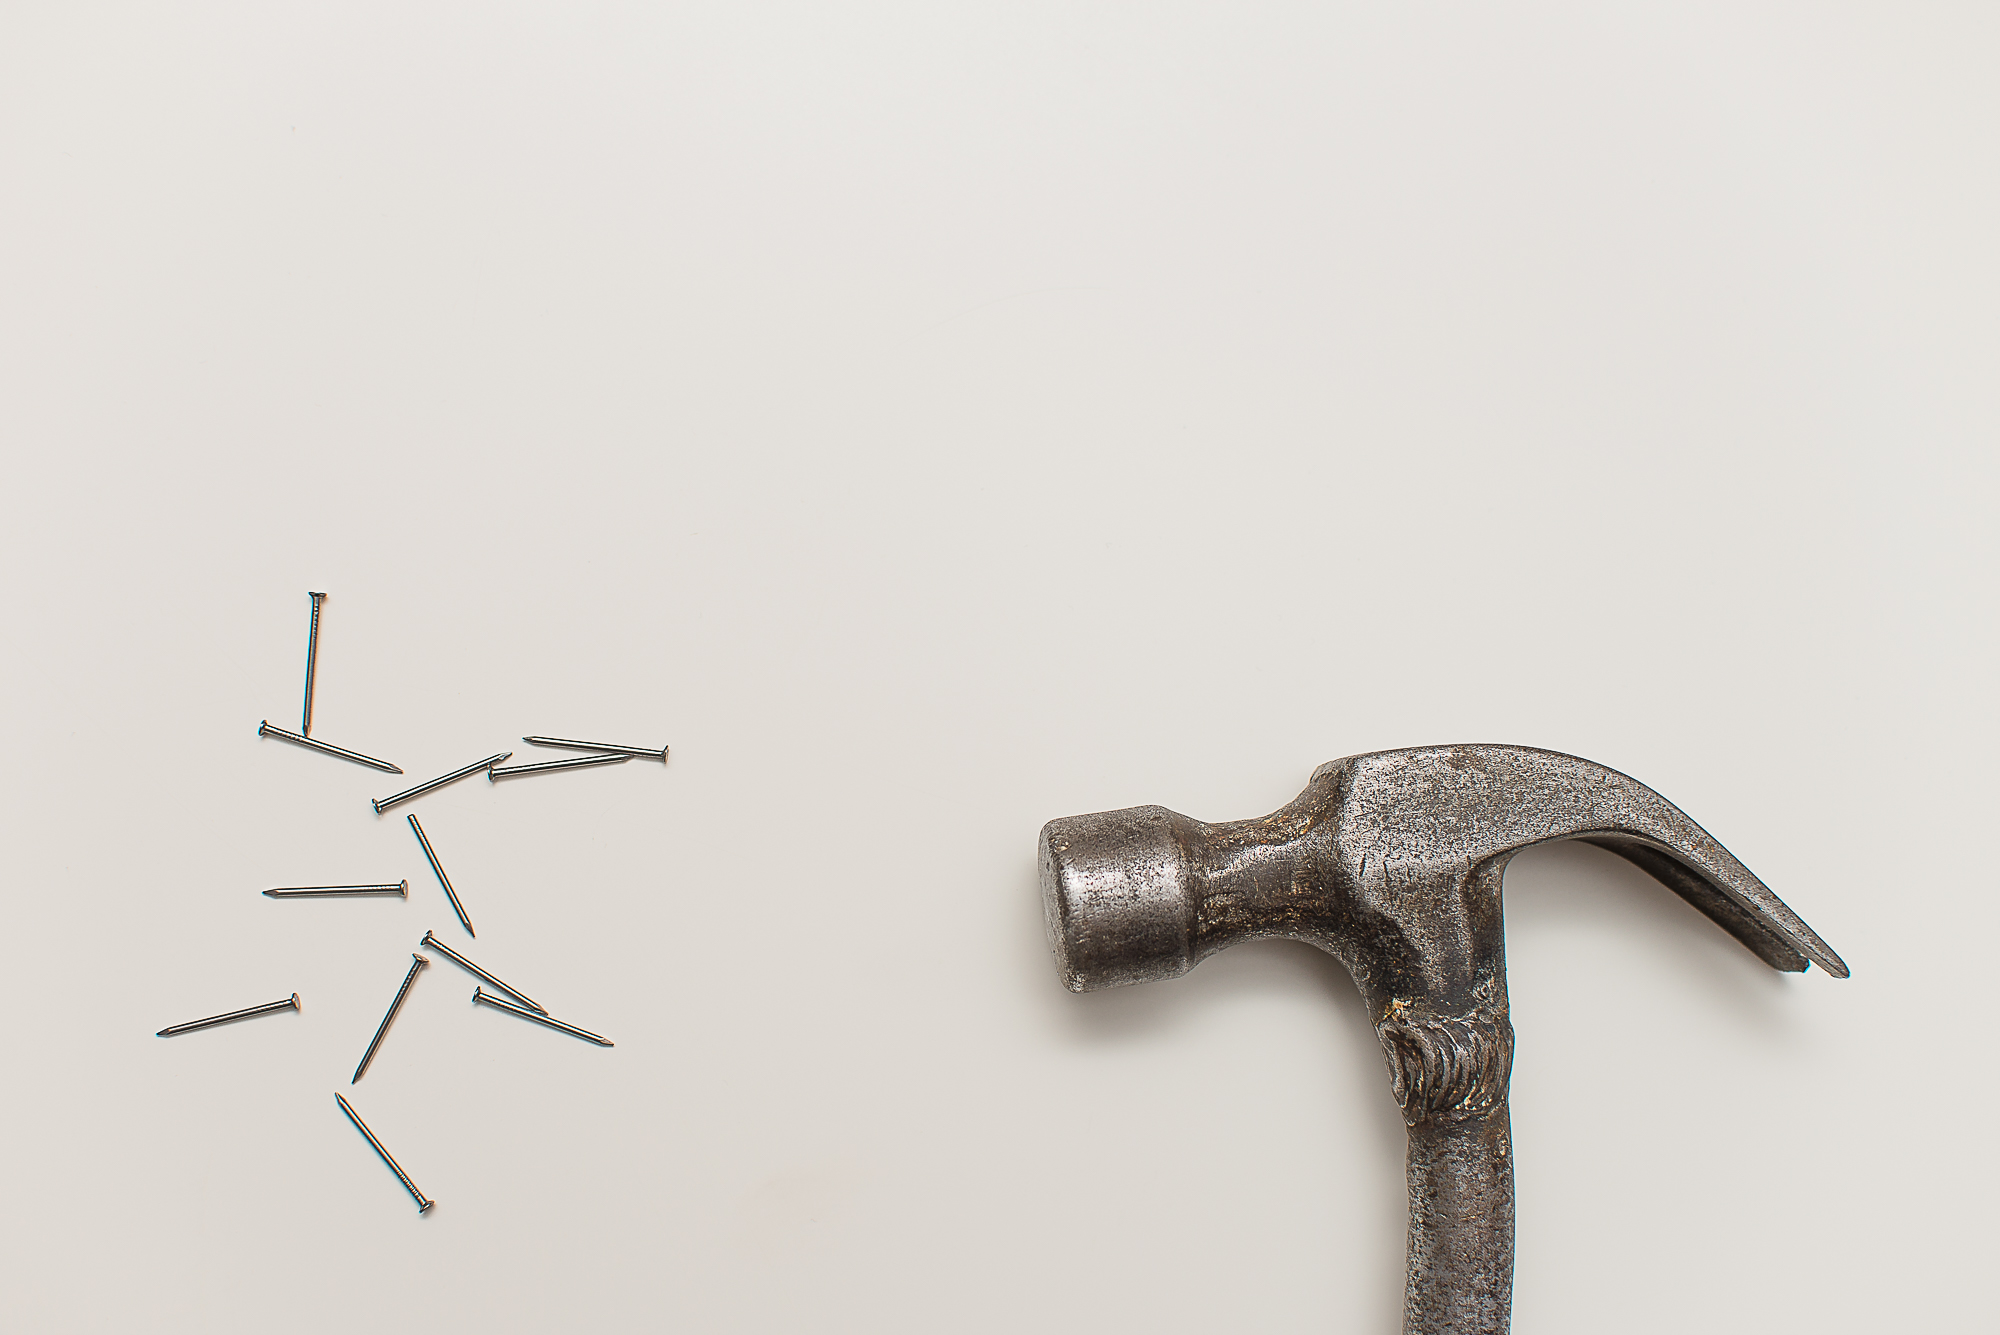 Photo of hammer and nails by Patryk Dziejma